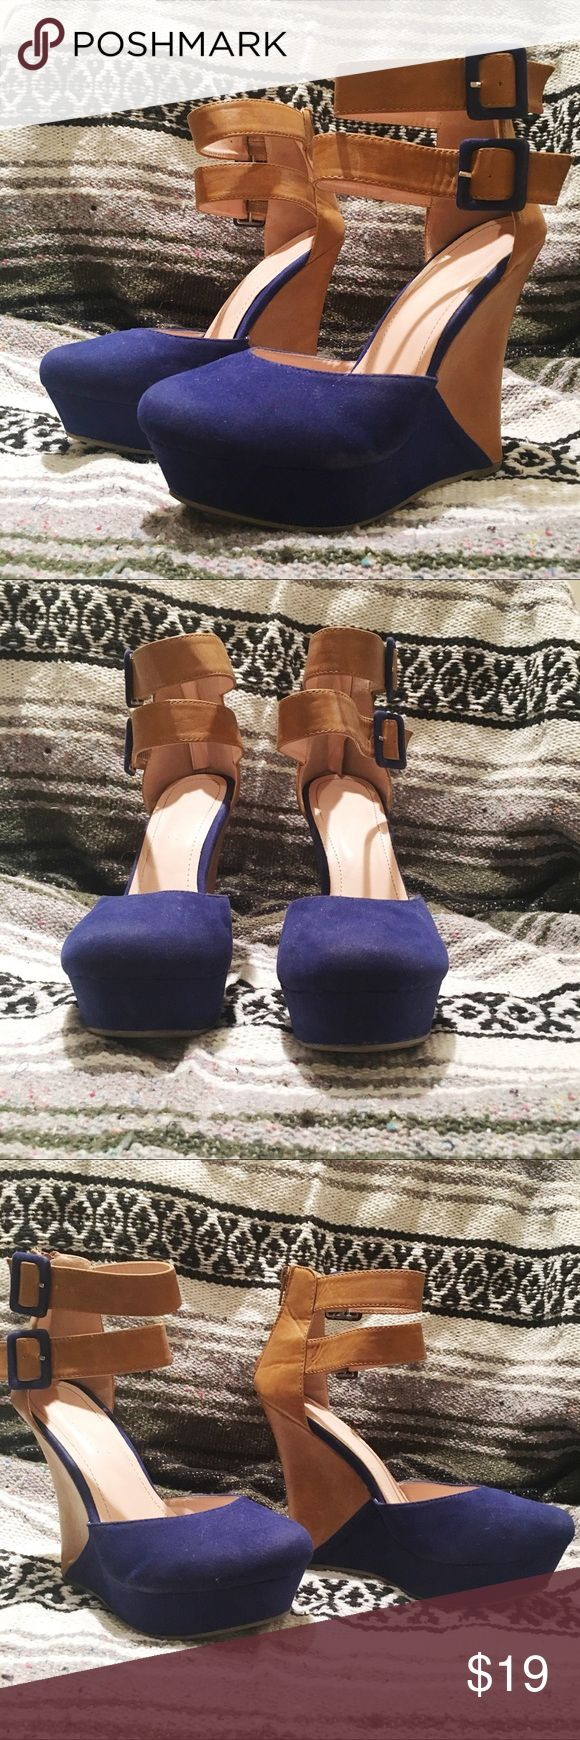 """Blue/Camel Party Platform Heels Wow factor shoes! Royal blue & camel brown heels are a cute pop of color with a party dress, skinny jeans, or jeggings. 5.25"""" heel and 1.25"""" platform, so it's like wearing a 4"""" heel. The buckles at the ankles are truly adjustable, so you can make them looser or tighter according to your comfort.  A few small blemishes on the blue suede and some wear on the back heelcap--only observed under bright lights. For these reasons, I am rating the shoes """"Good""""…"""